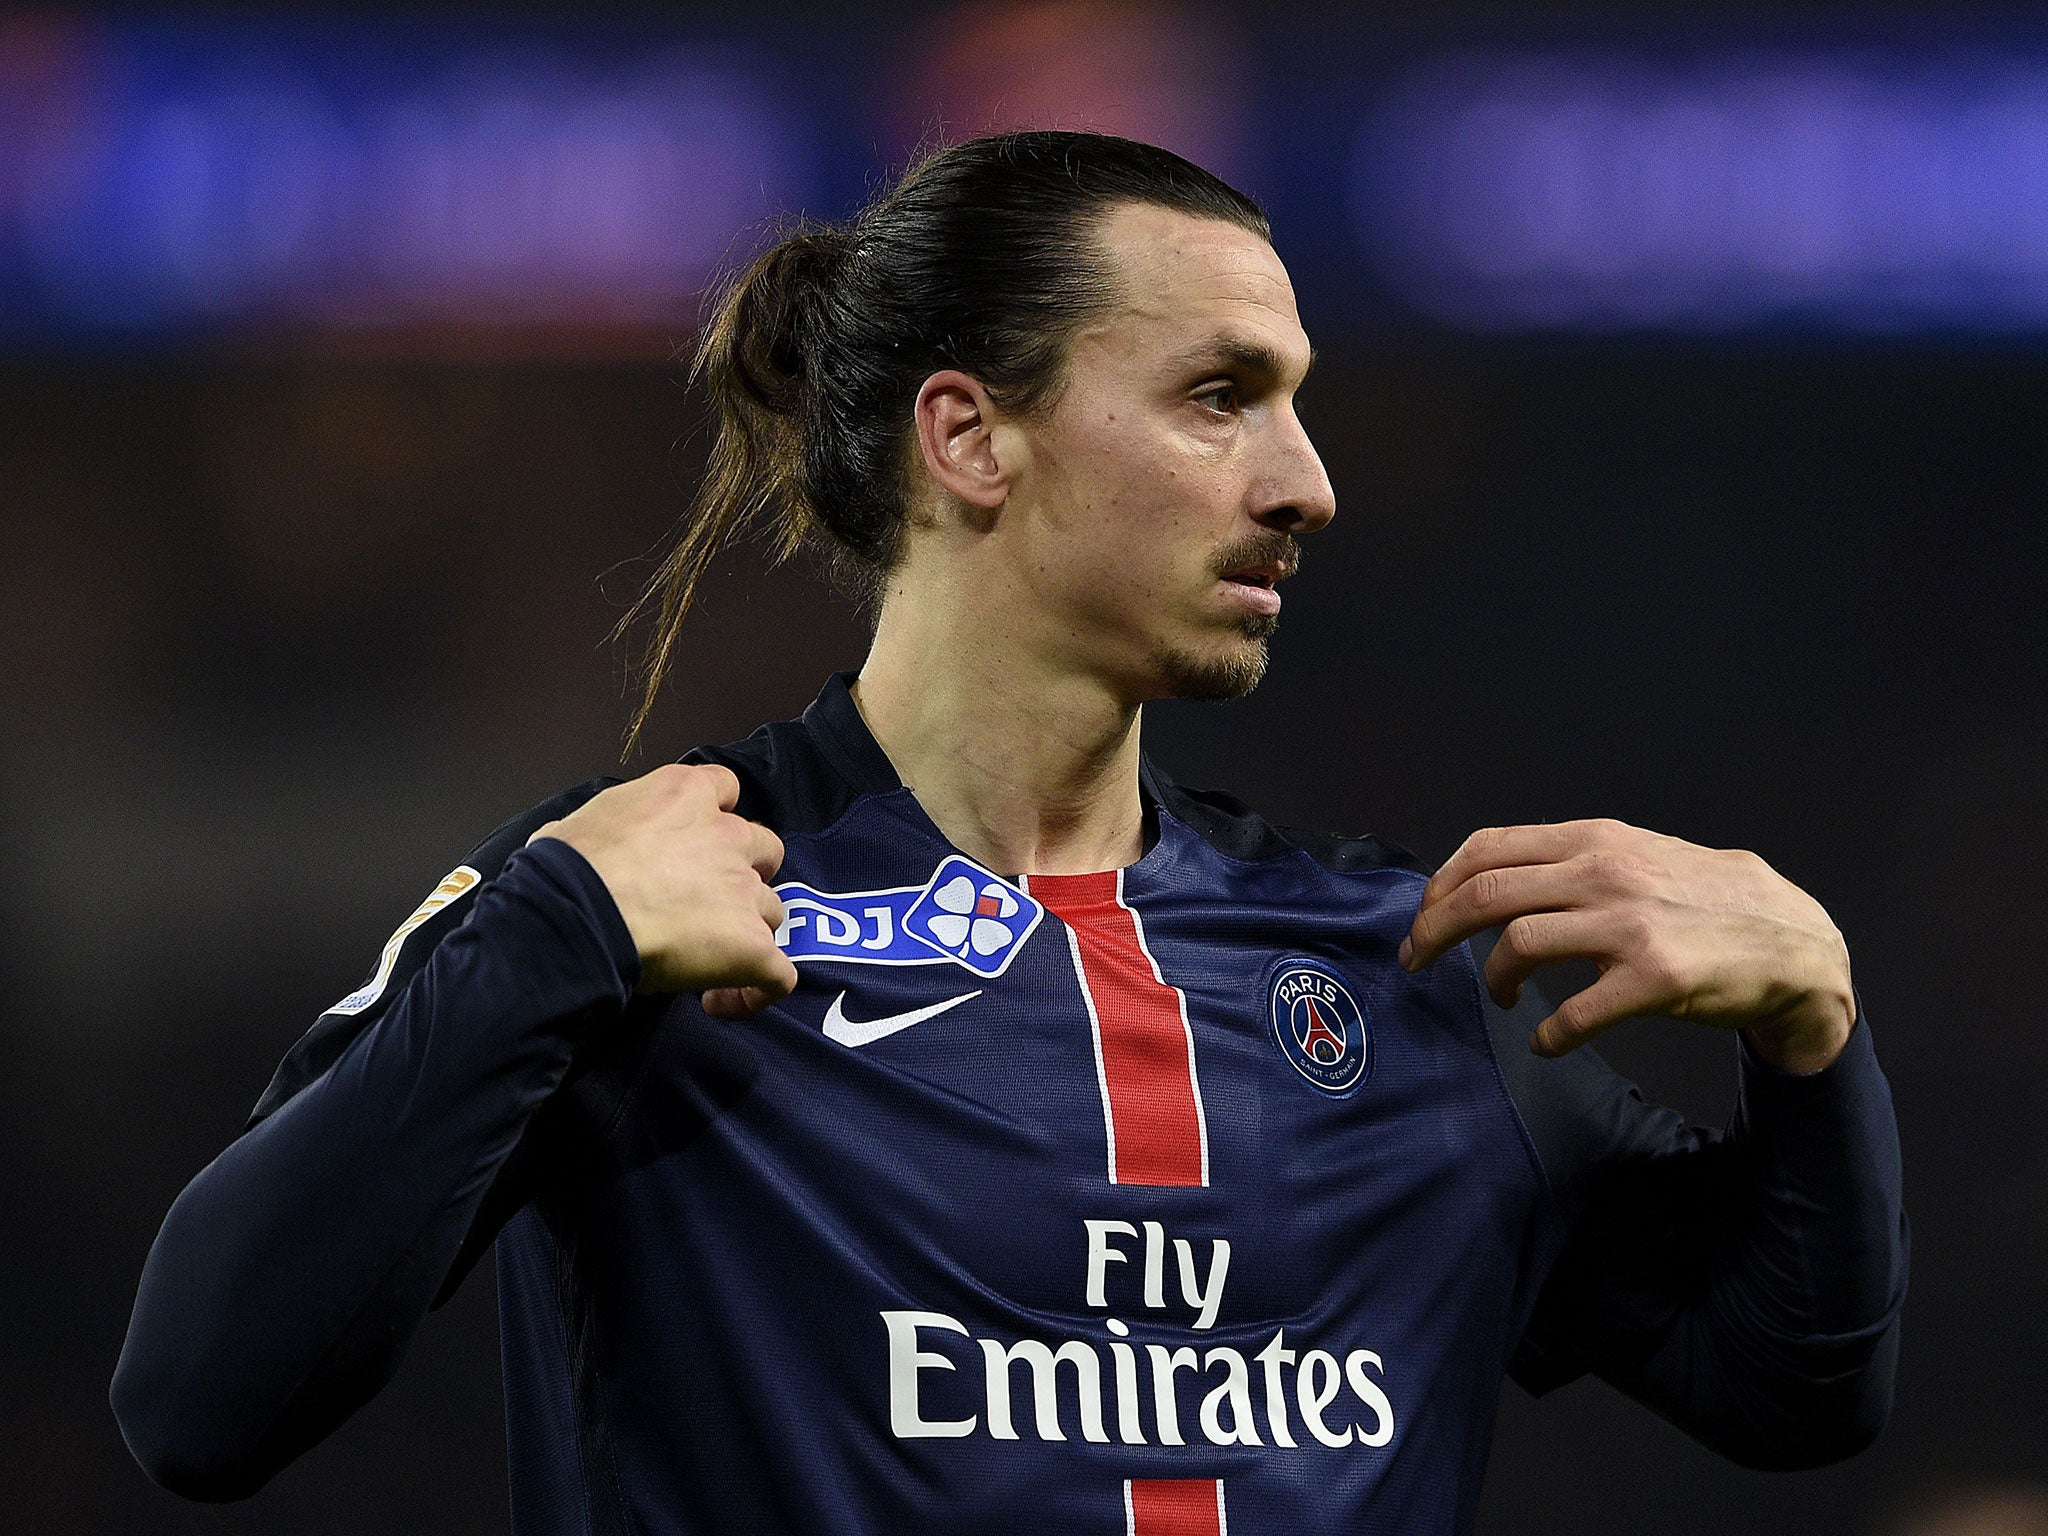 Zlatan Ibrahimovic to leave PSG: Manchester United target confirms exit from Ligue 1 club this summer | European | Sport | The Independent